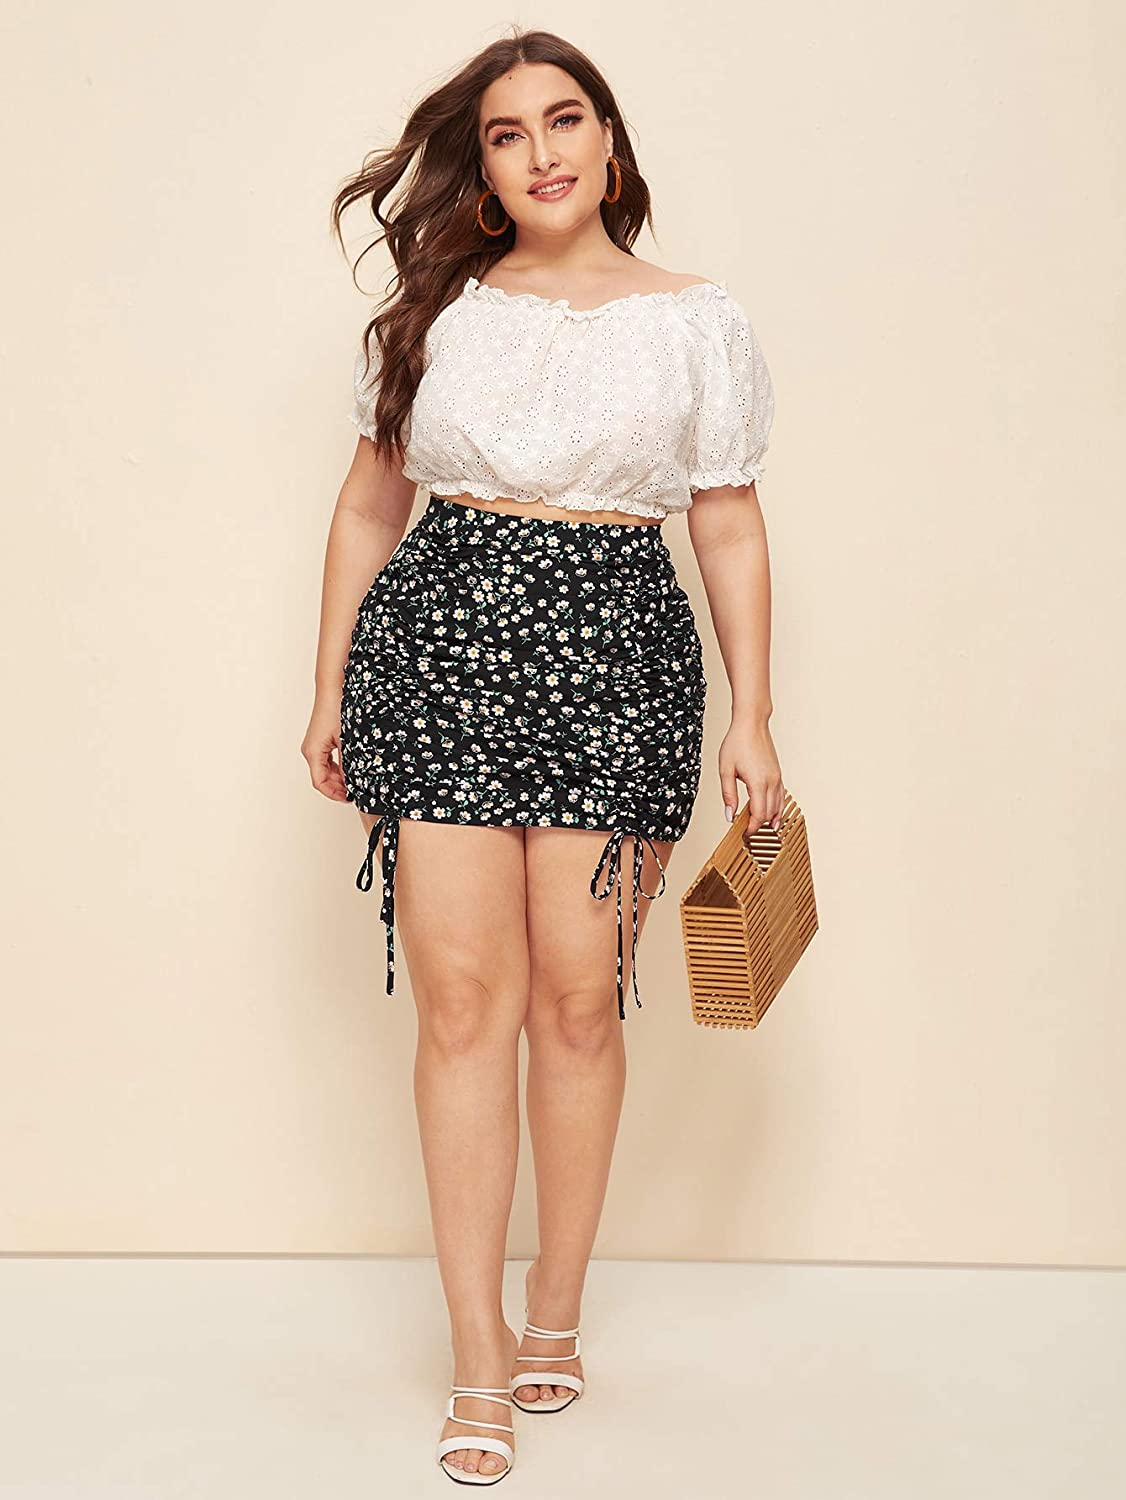 Floerns Women's Plus Size Drawstring Ruched Front Floral Bodycon Mini Skirt